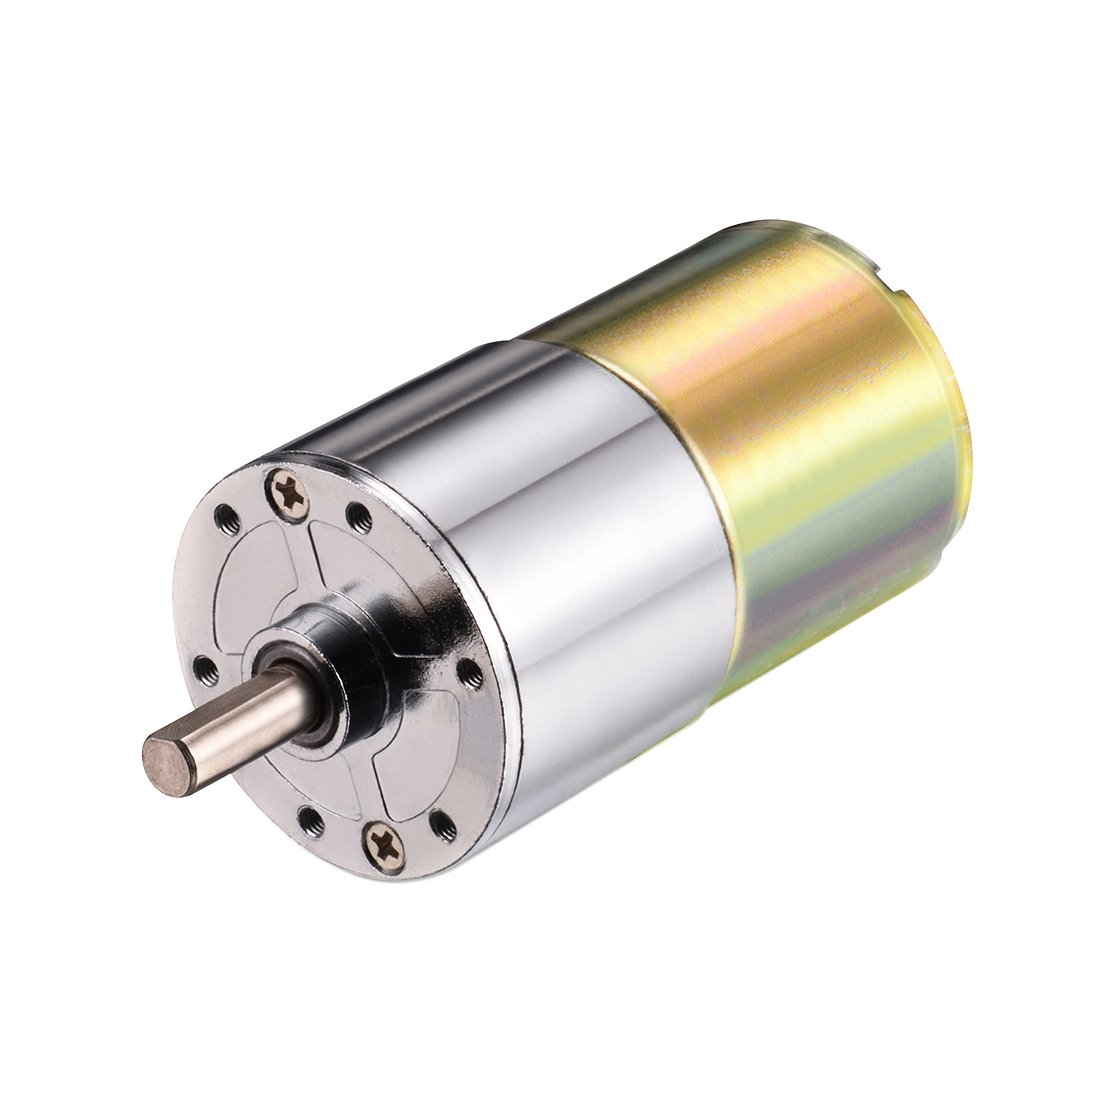 uxcell 12V DC 200RPM Gear Motor High Torque Electric Micro Speed Reduction Geared Motor Centric Output Shaft